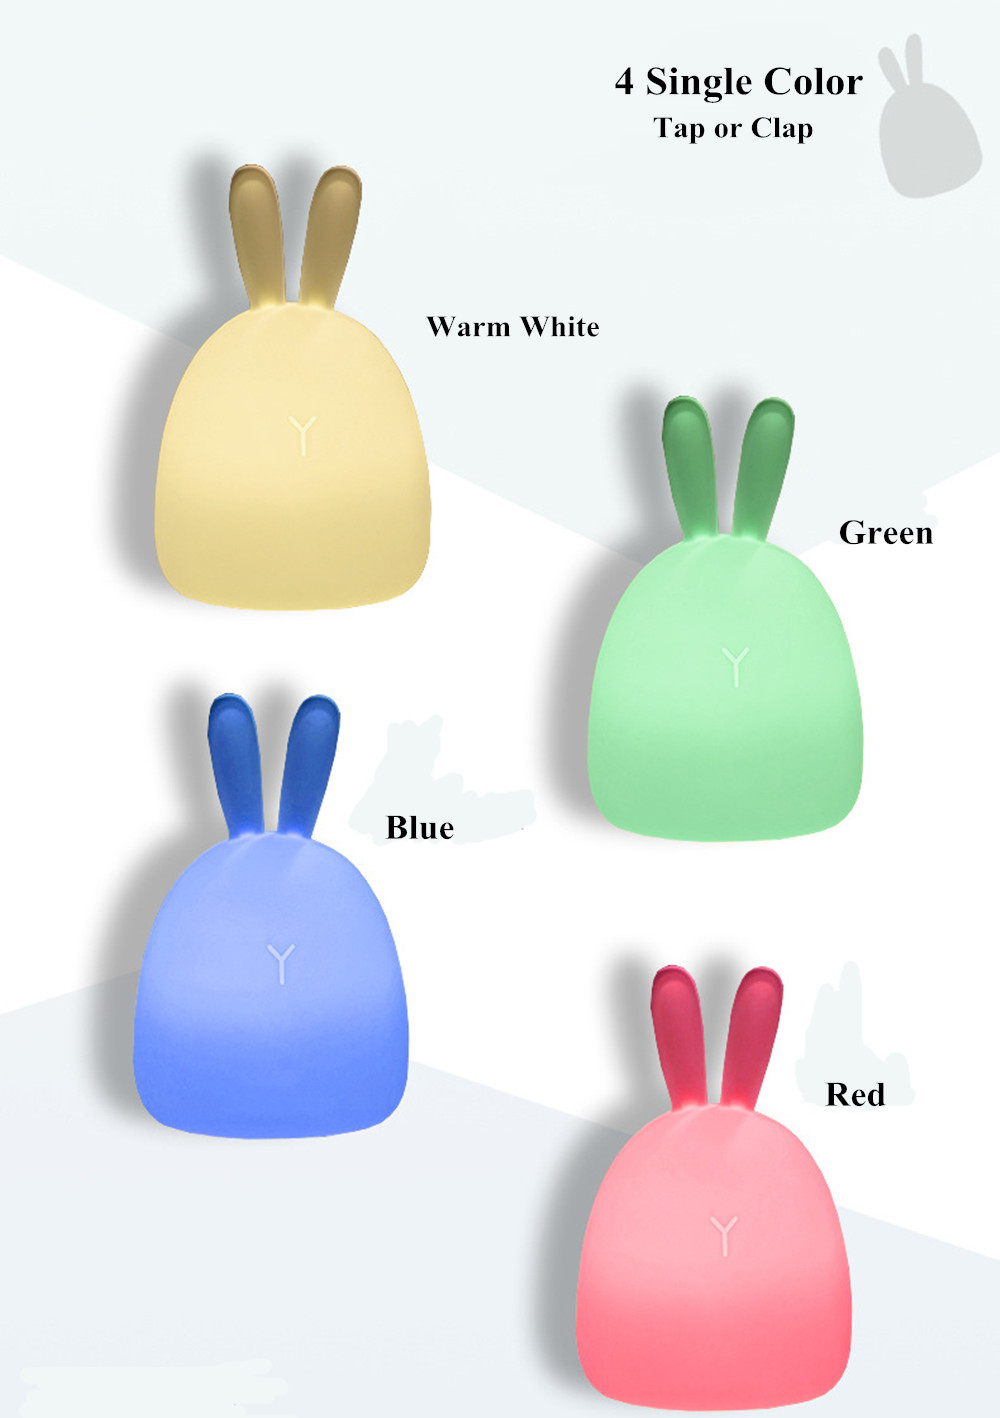 SuperNight Rabbit LED Night Light Vibration Touch Sensor Colorful USB Silicone Bunny Bedside Table Lamp for Children Kids Baby (15)